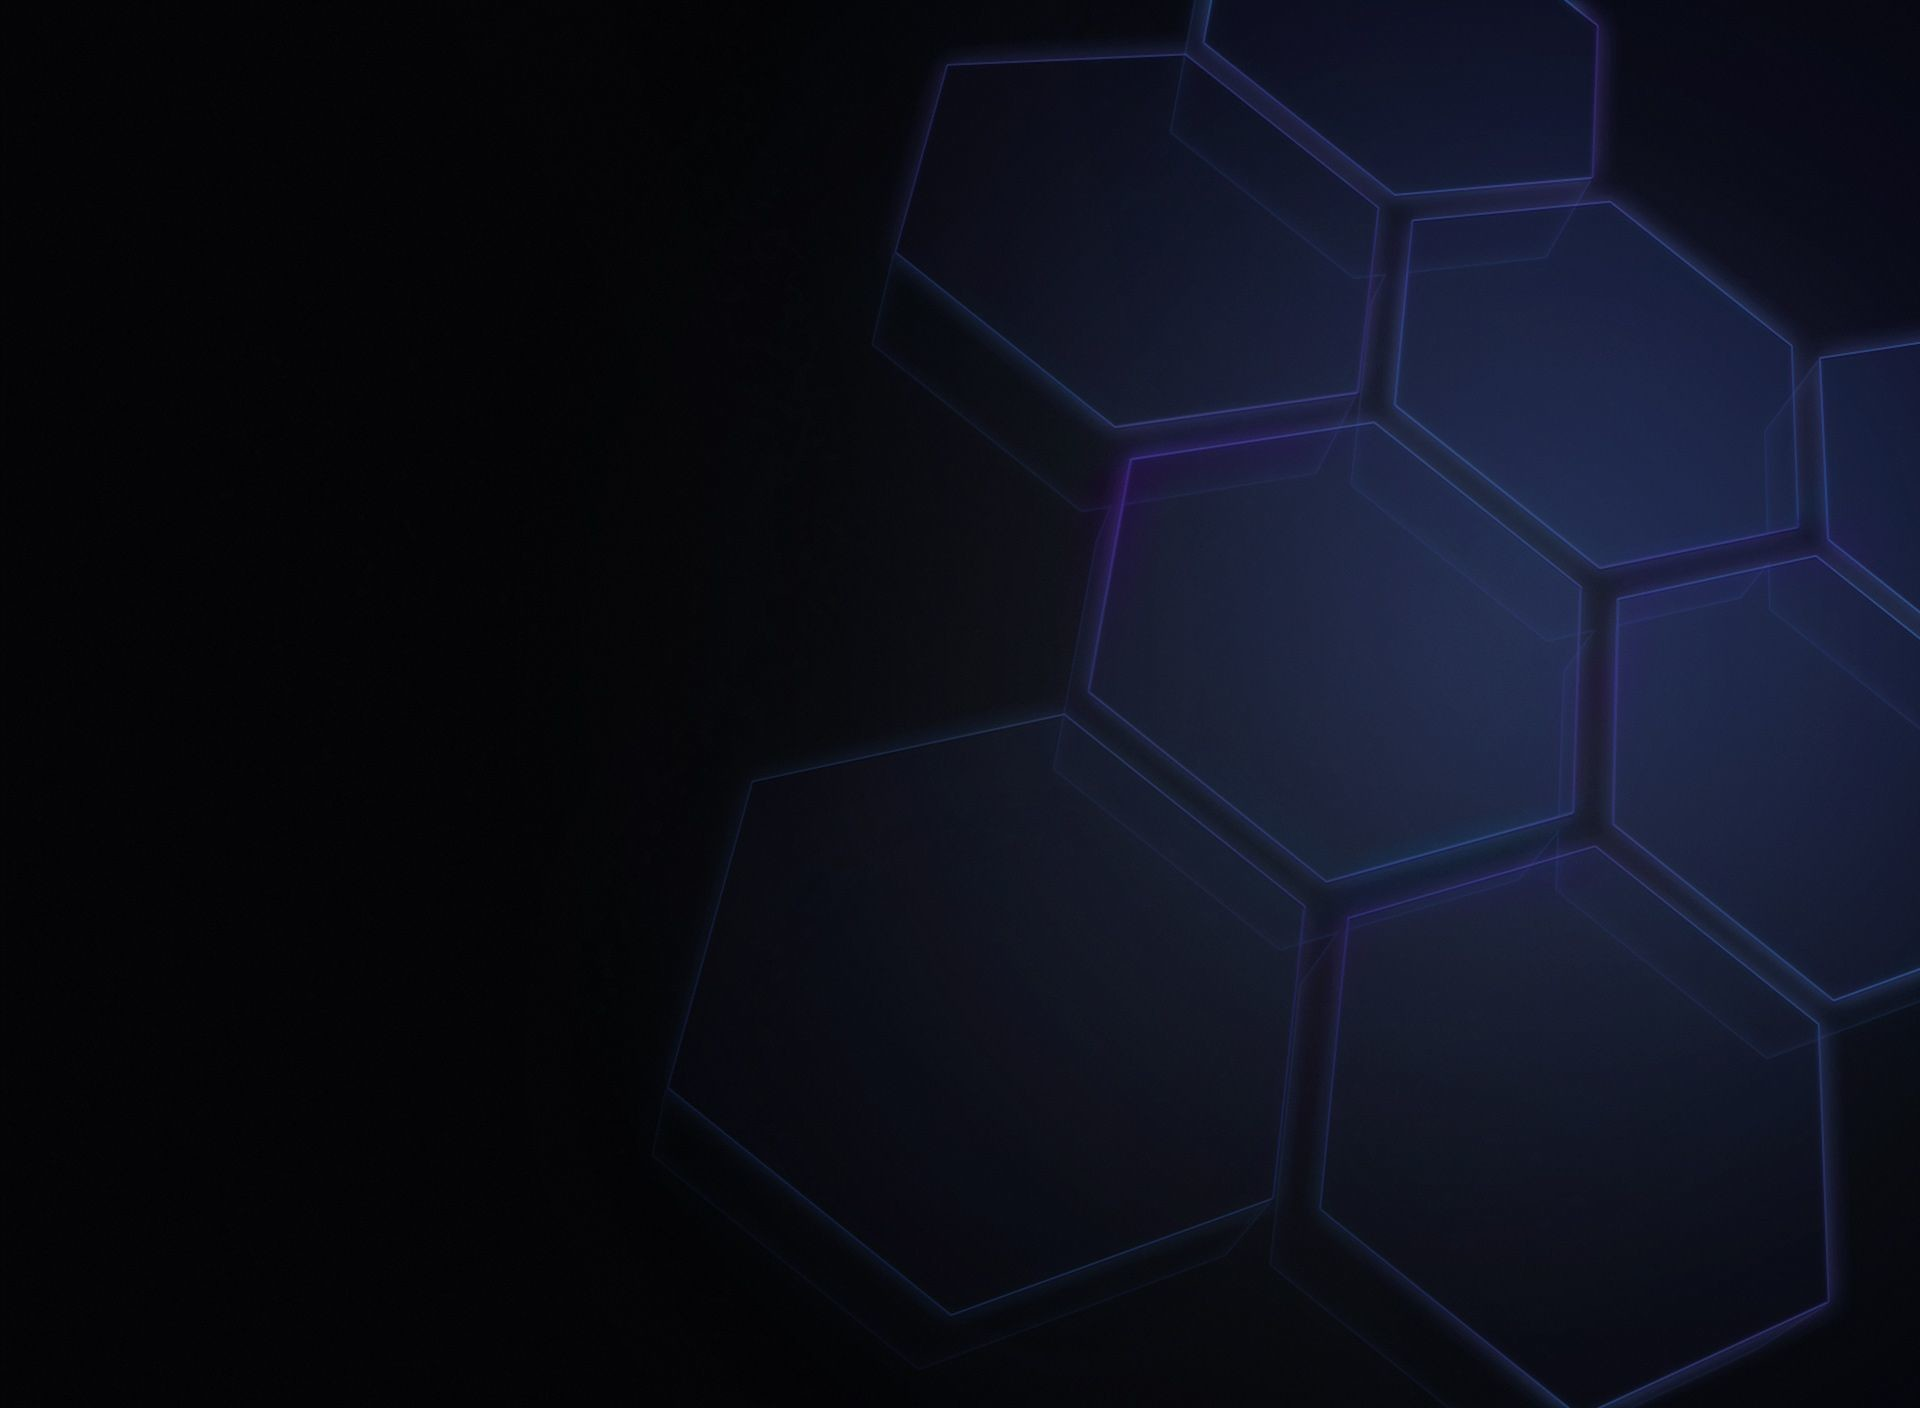 Res: 1920x1408, Download: Honeycomb Wallpapers from the Full SDK | Droid Life